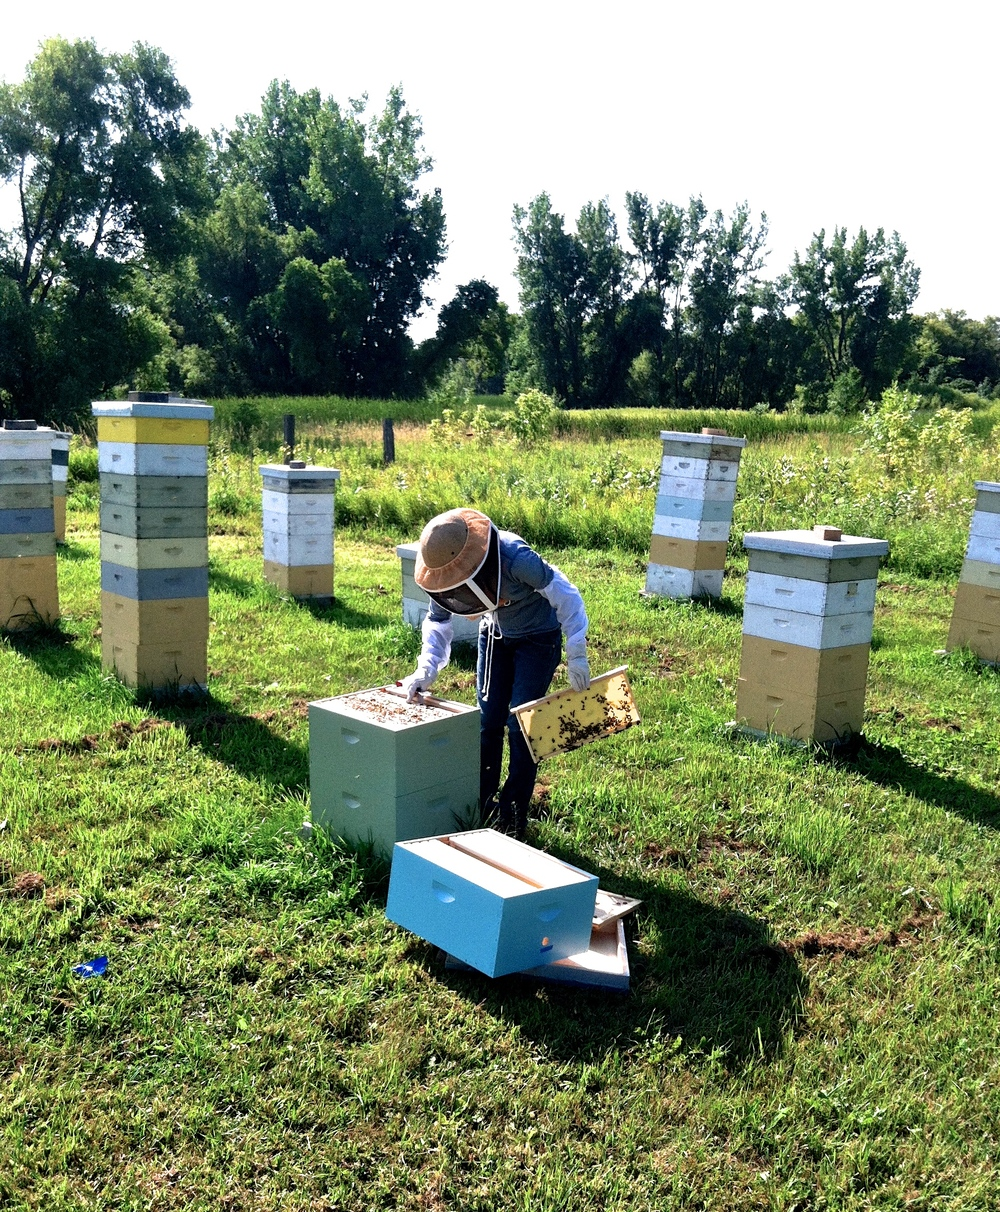 Here I am working with the bees last summer.